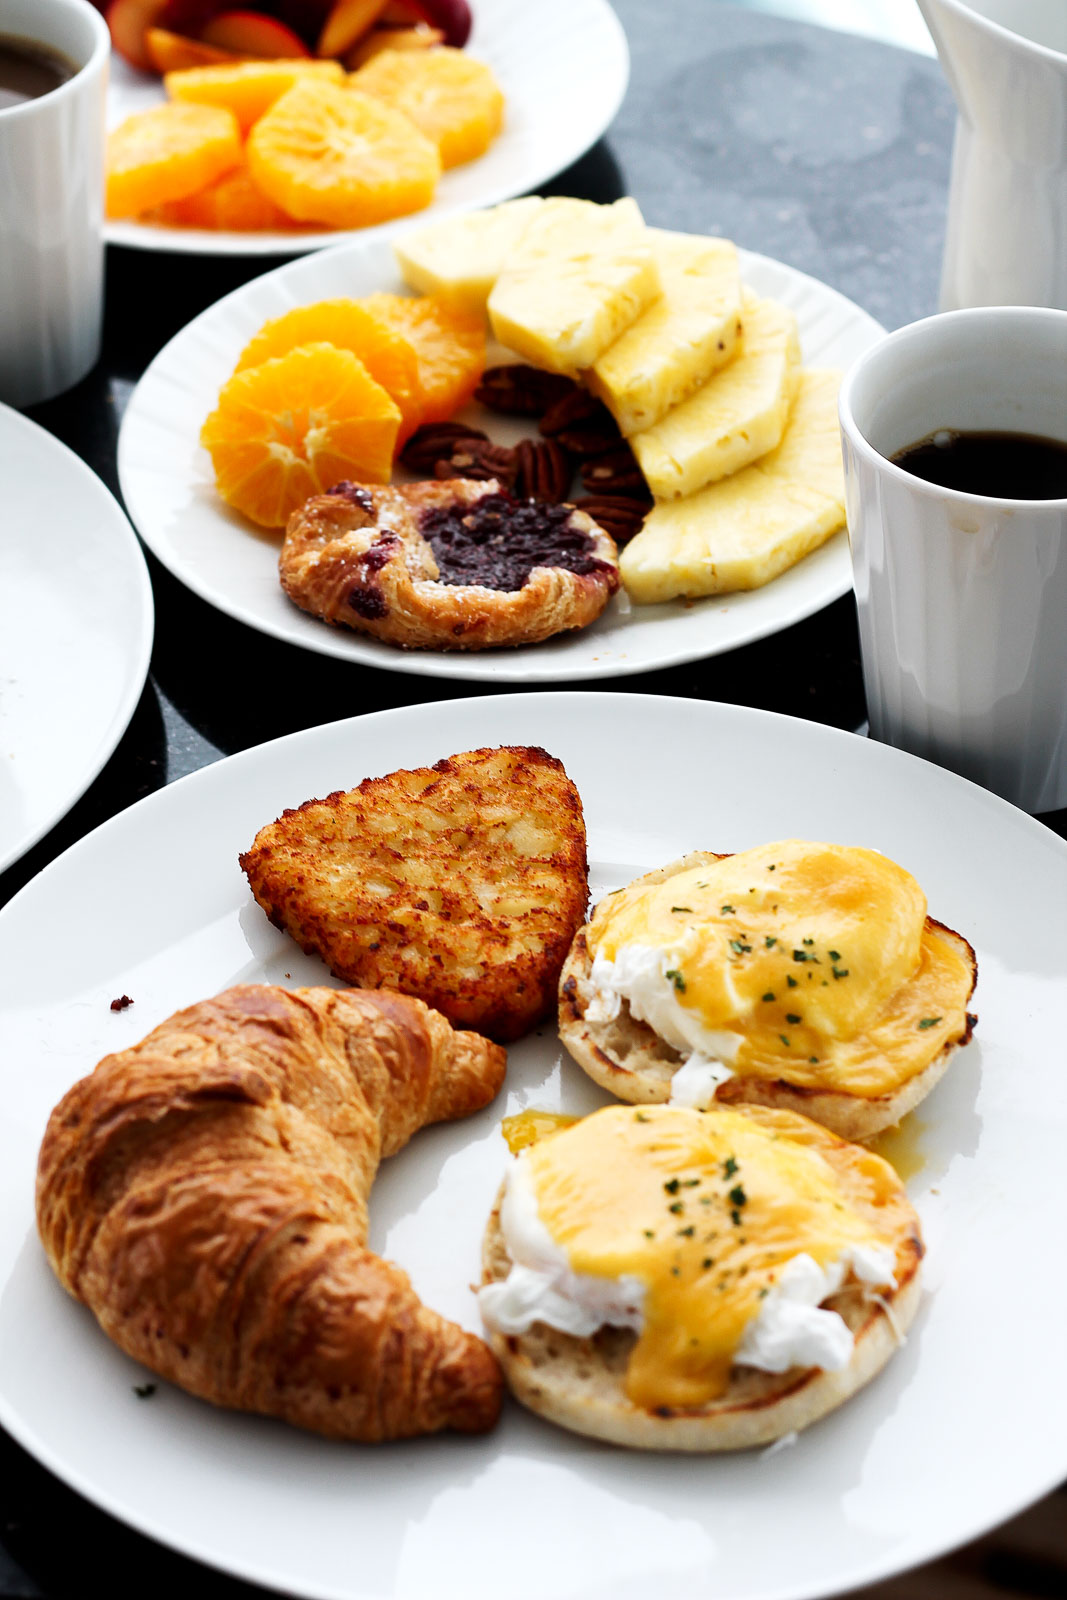 croissant and eggs benedict on a plate